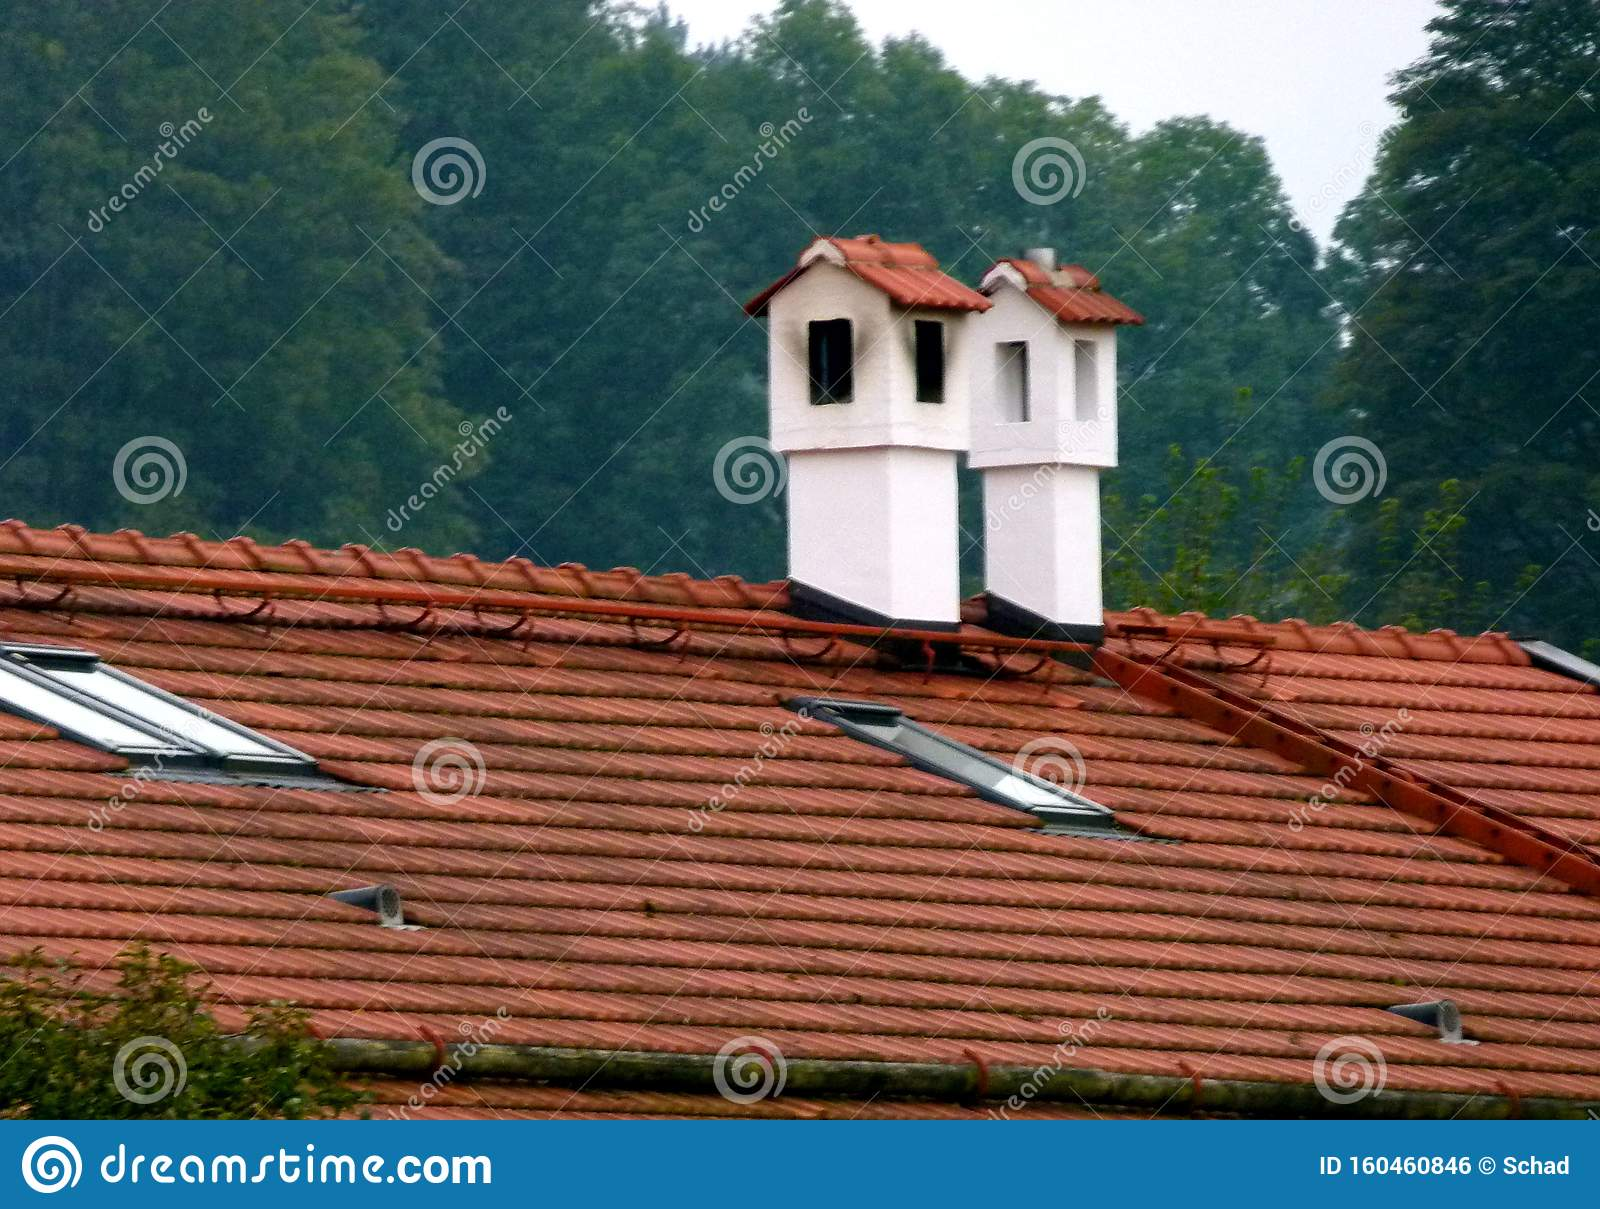 2 White Chimneys Plastered With Brick Cover On A Tiled Roof Stock Photo Image Of Outdoors Construction 160460846